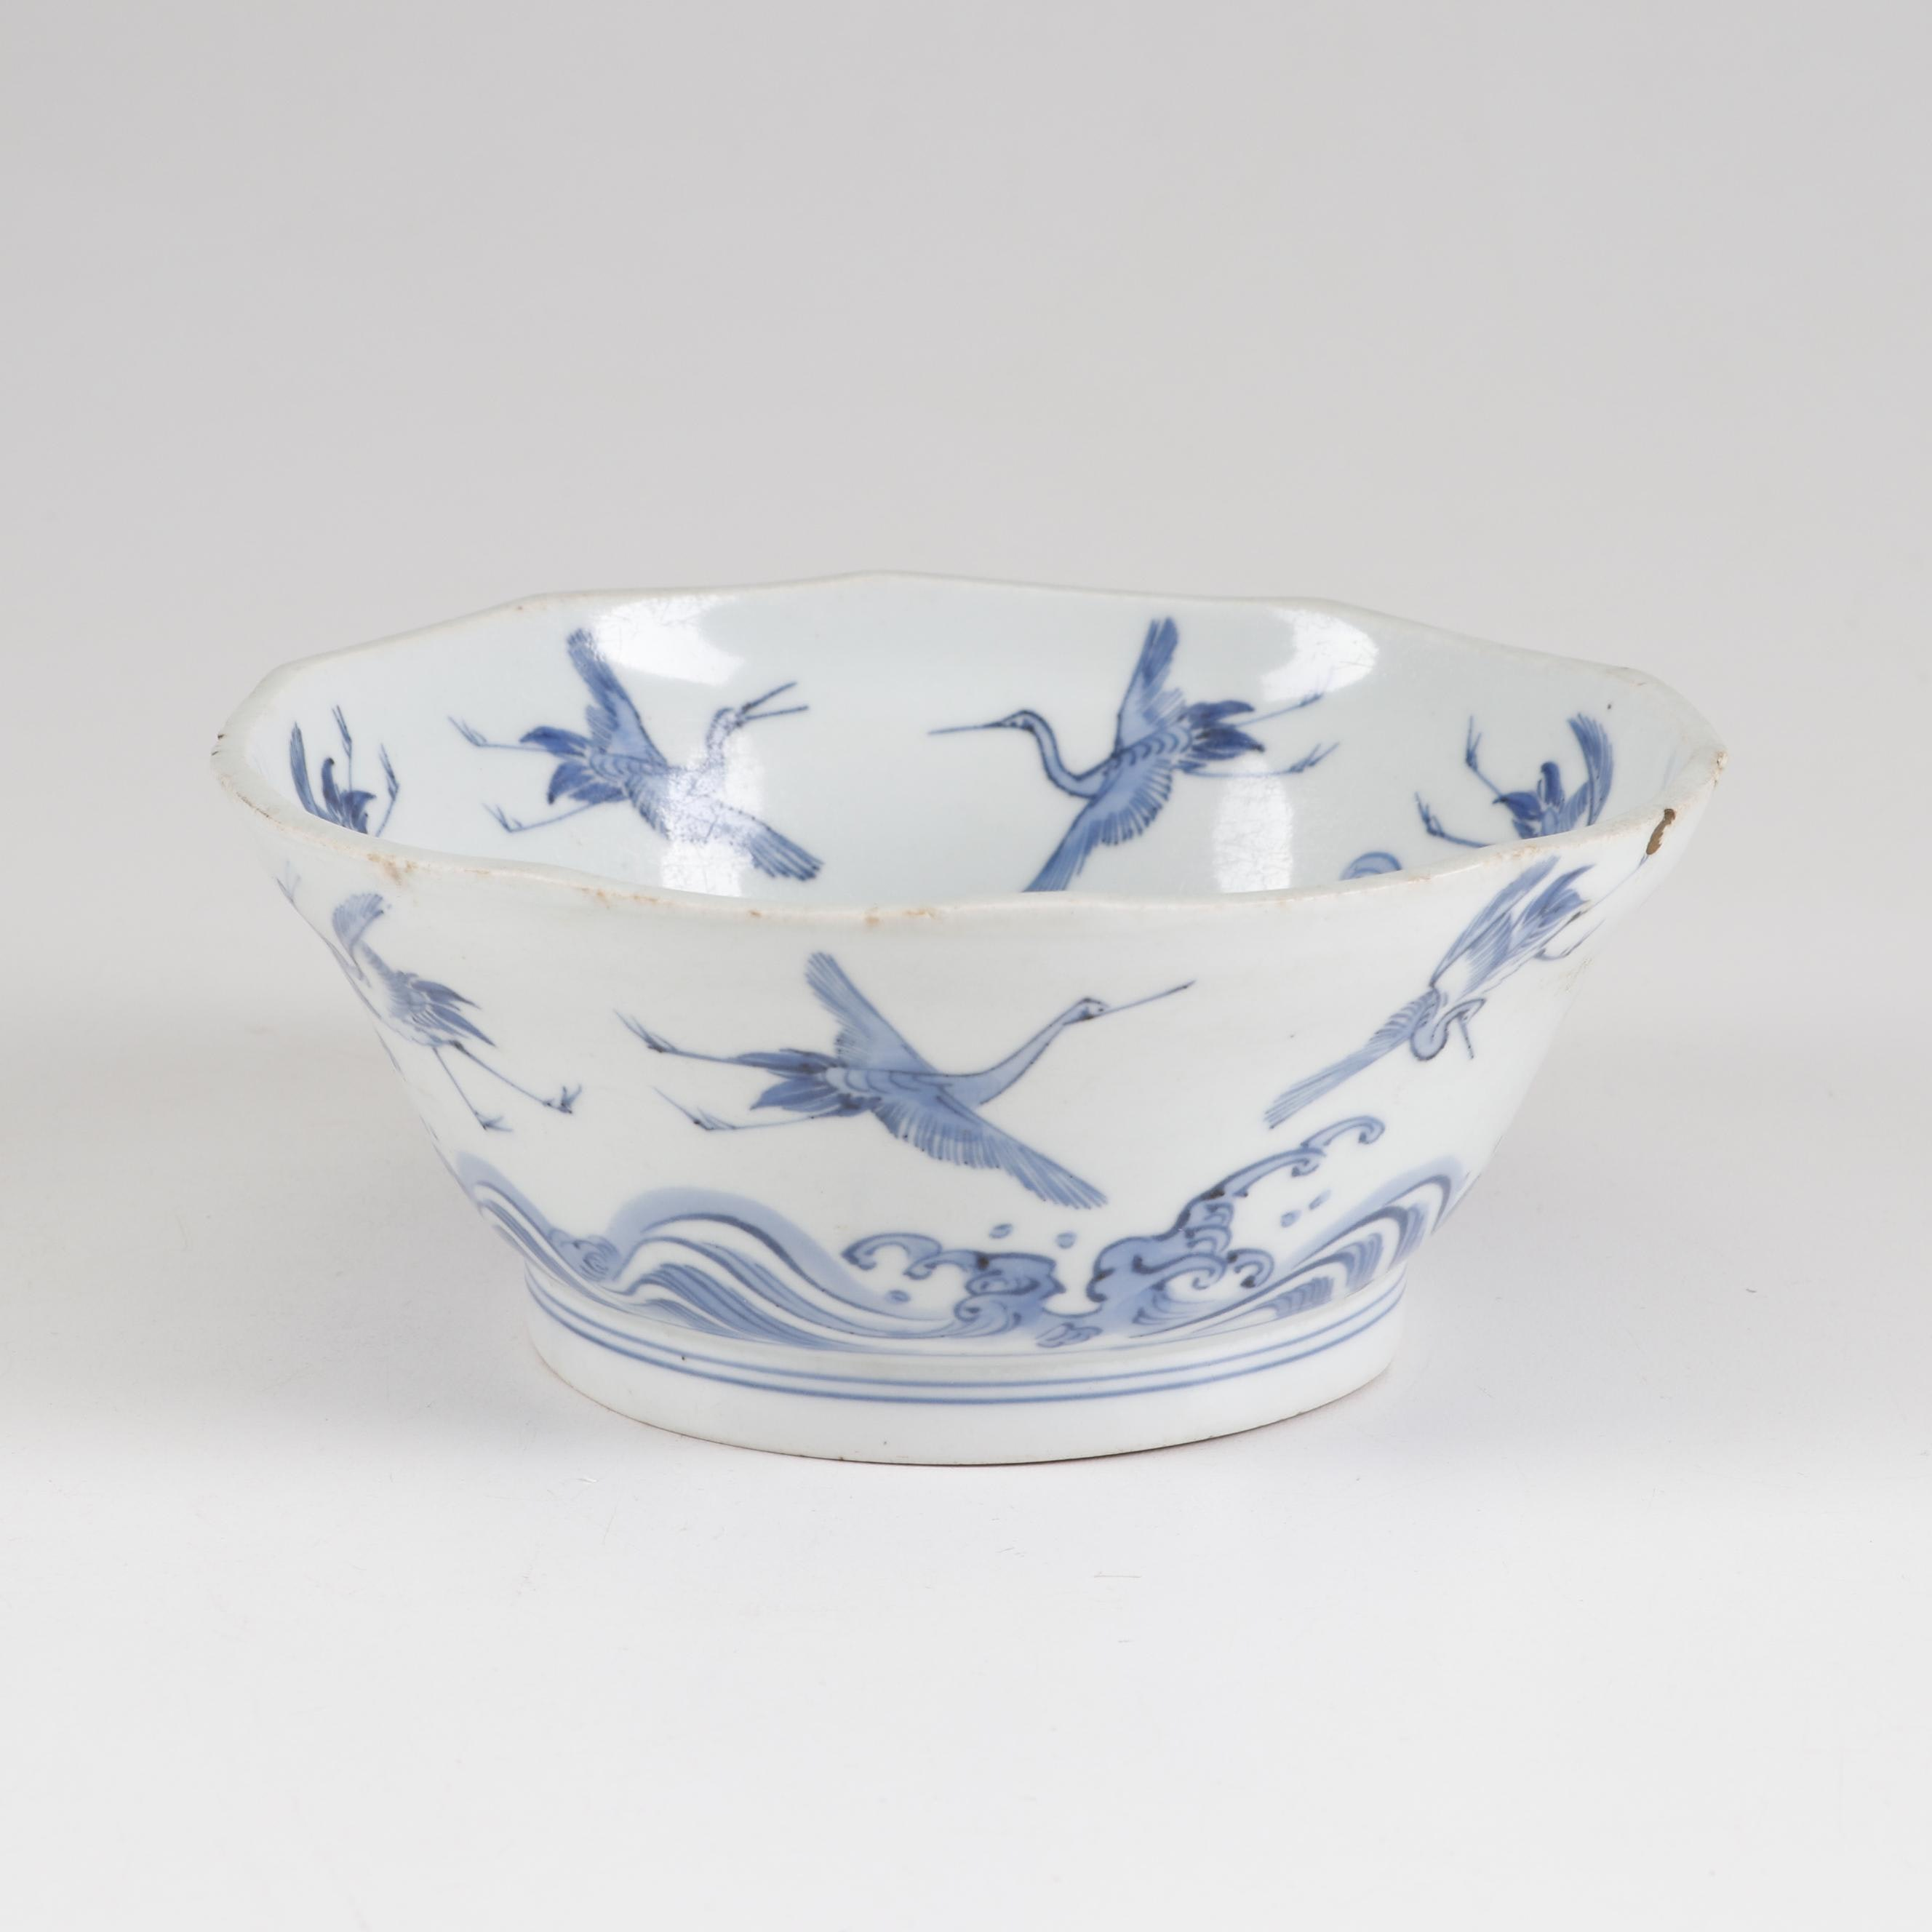 Chinese Hand-Painted Blue and White Porcelain Bowl, Early 19th Century